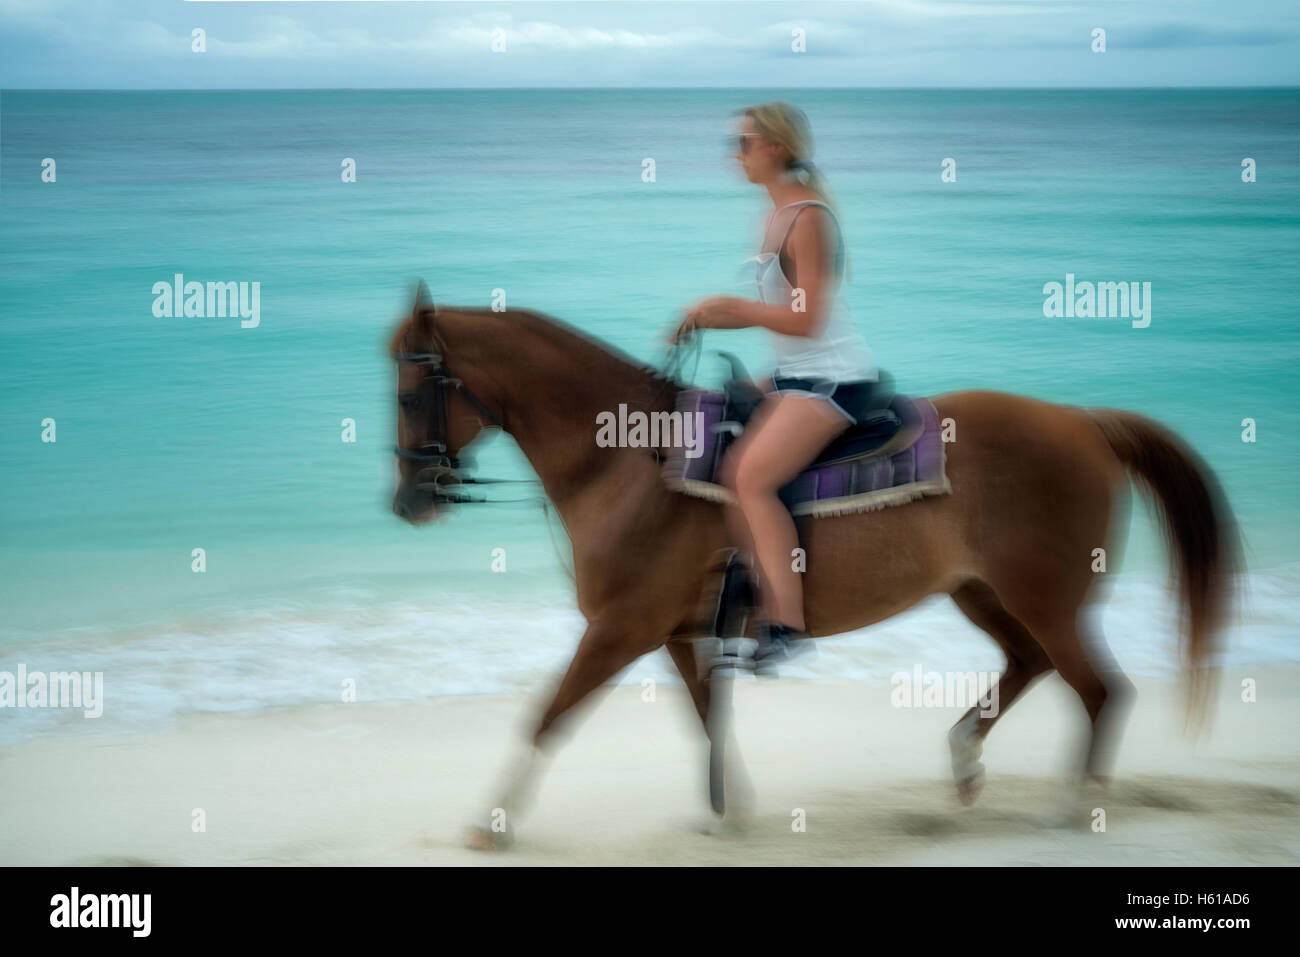 Woman galloping horse on shore. Turks and Caicos. Providenciales - Stock Image